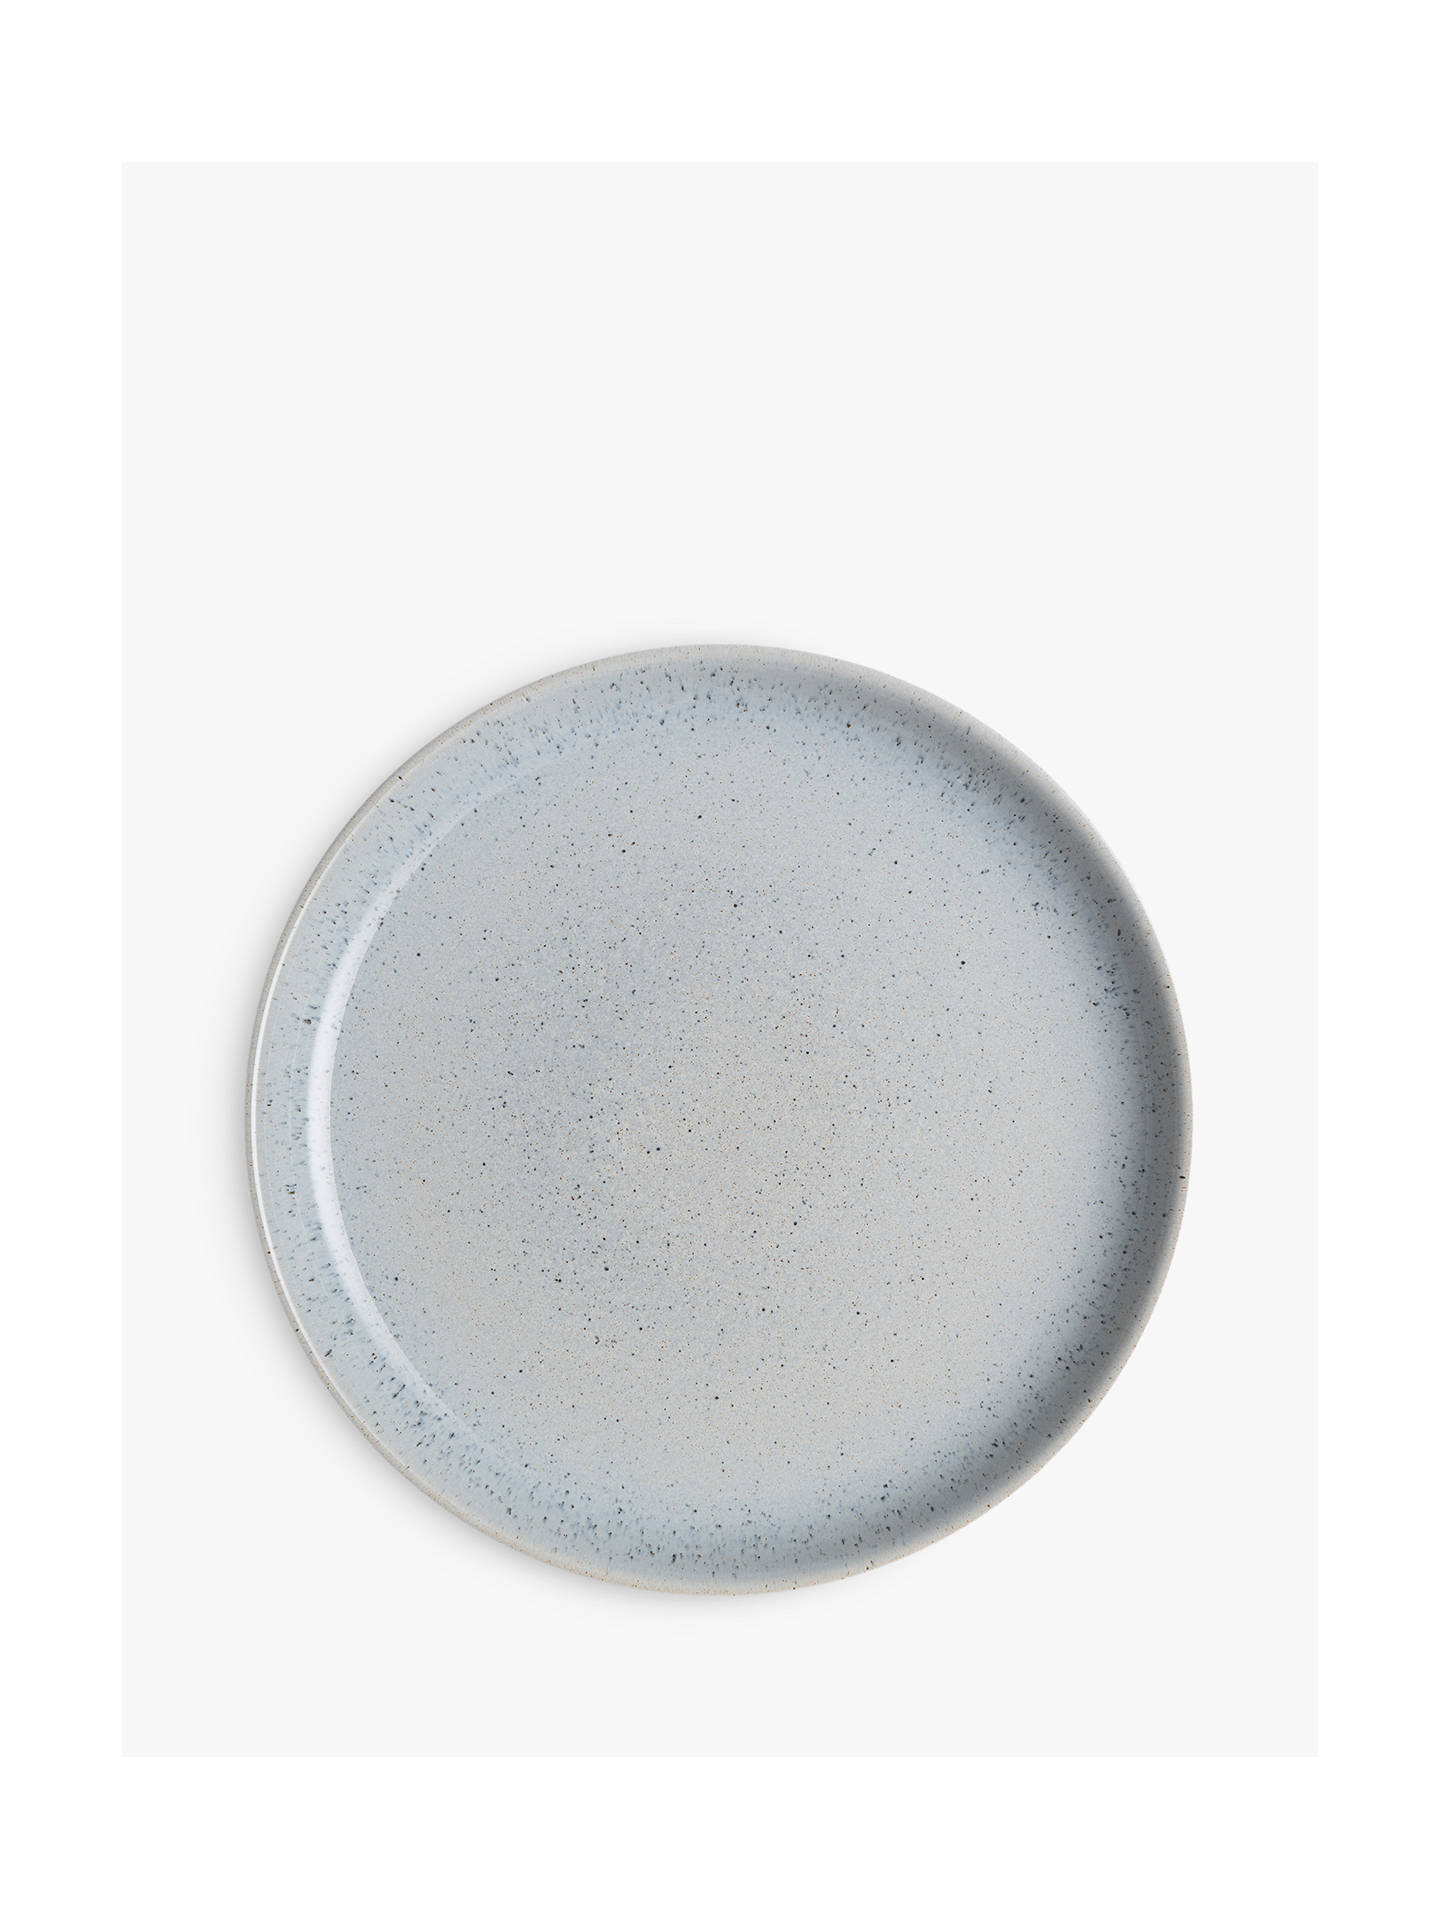 BuyDenby Studio Blue Dinner Coupe Plates, Chalk/Blue, Dia.26cm, Set of 4 Online at johnlewis.com